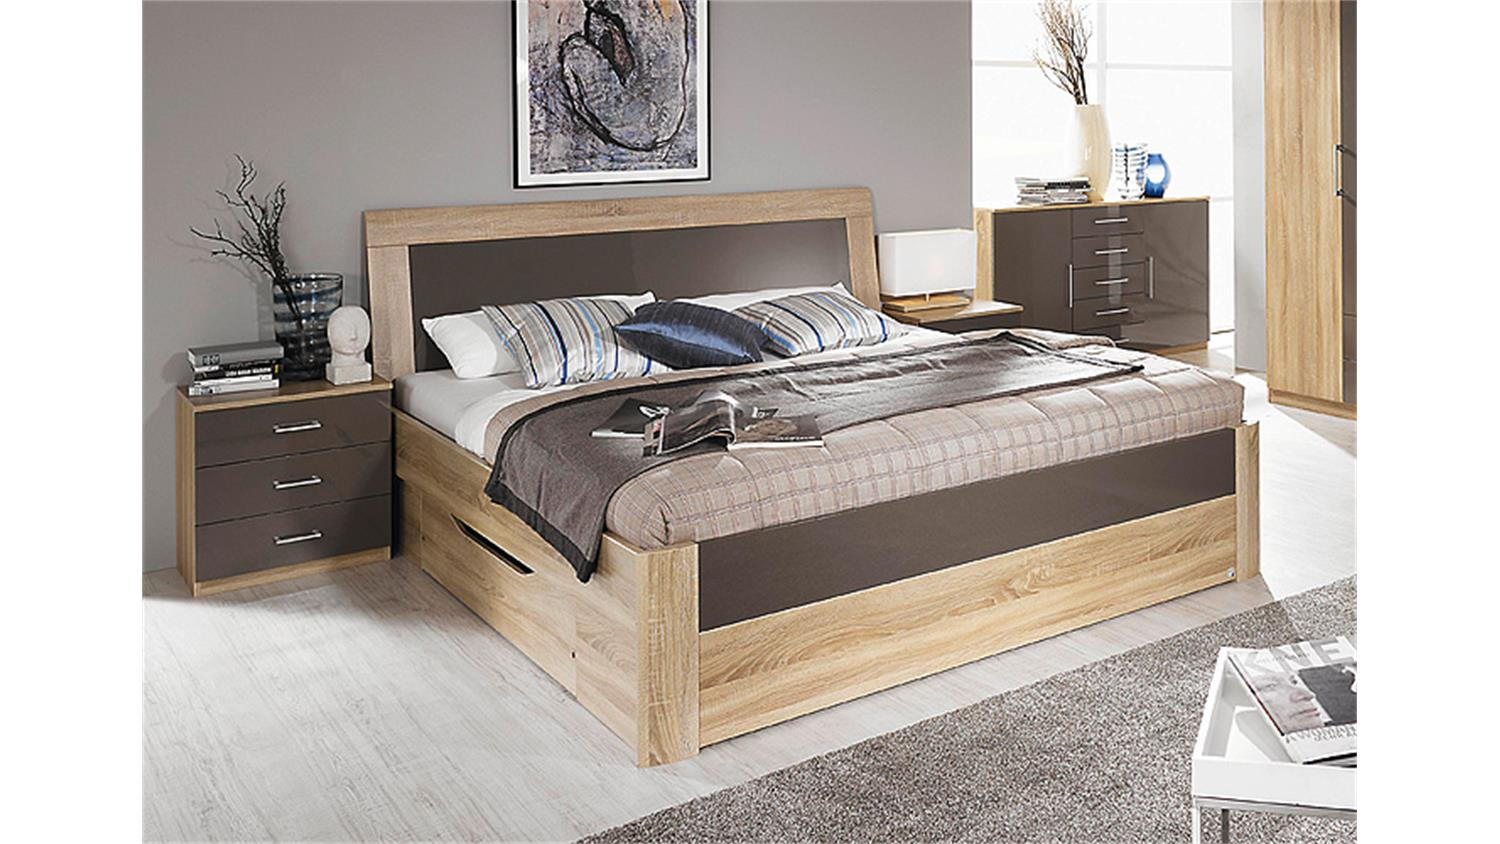 betten mit bettkasten 180x200 bett wei 180x200 landhaus betten massiv holz m bel mit bettkasten. Black Bedroom Furniture Sets. Home Design Ideas